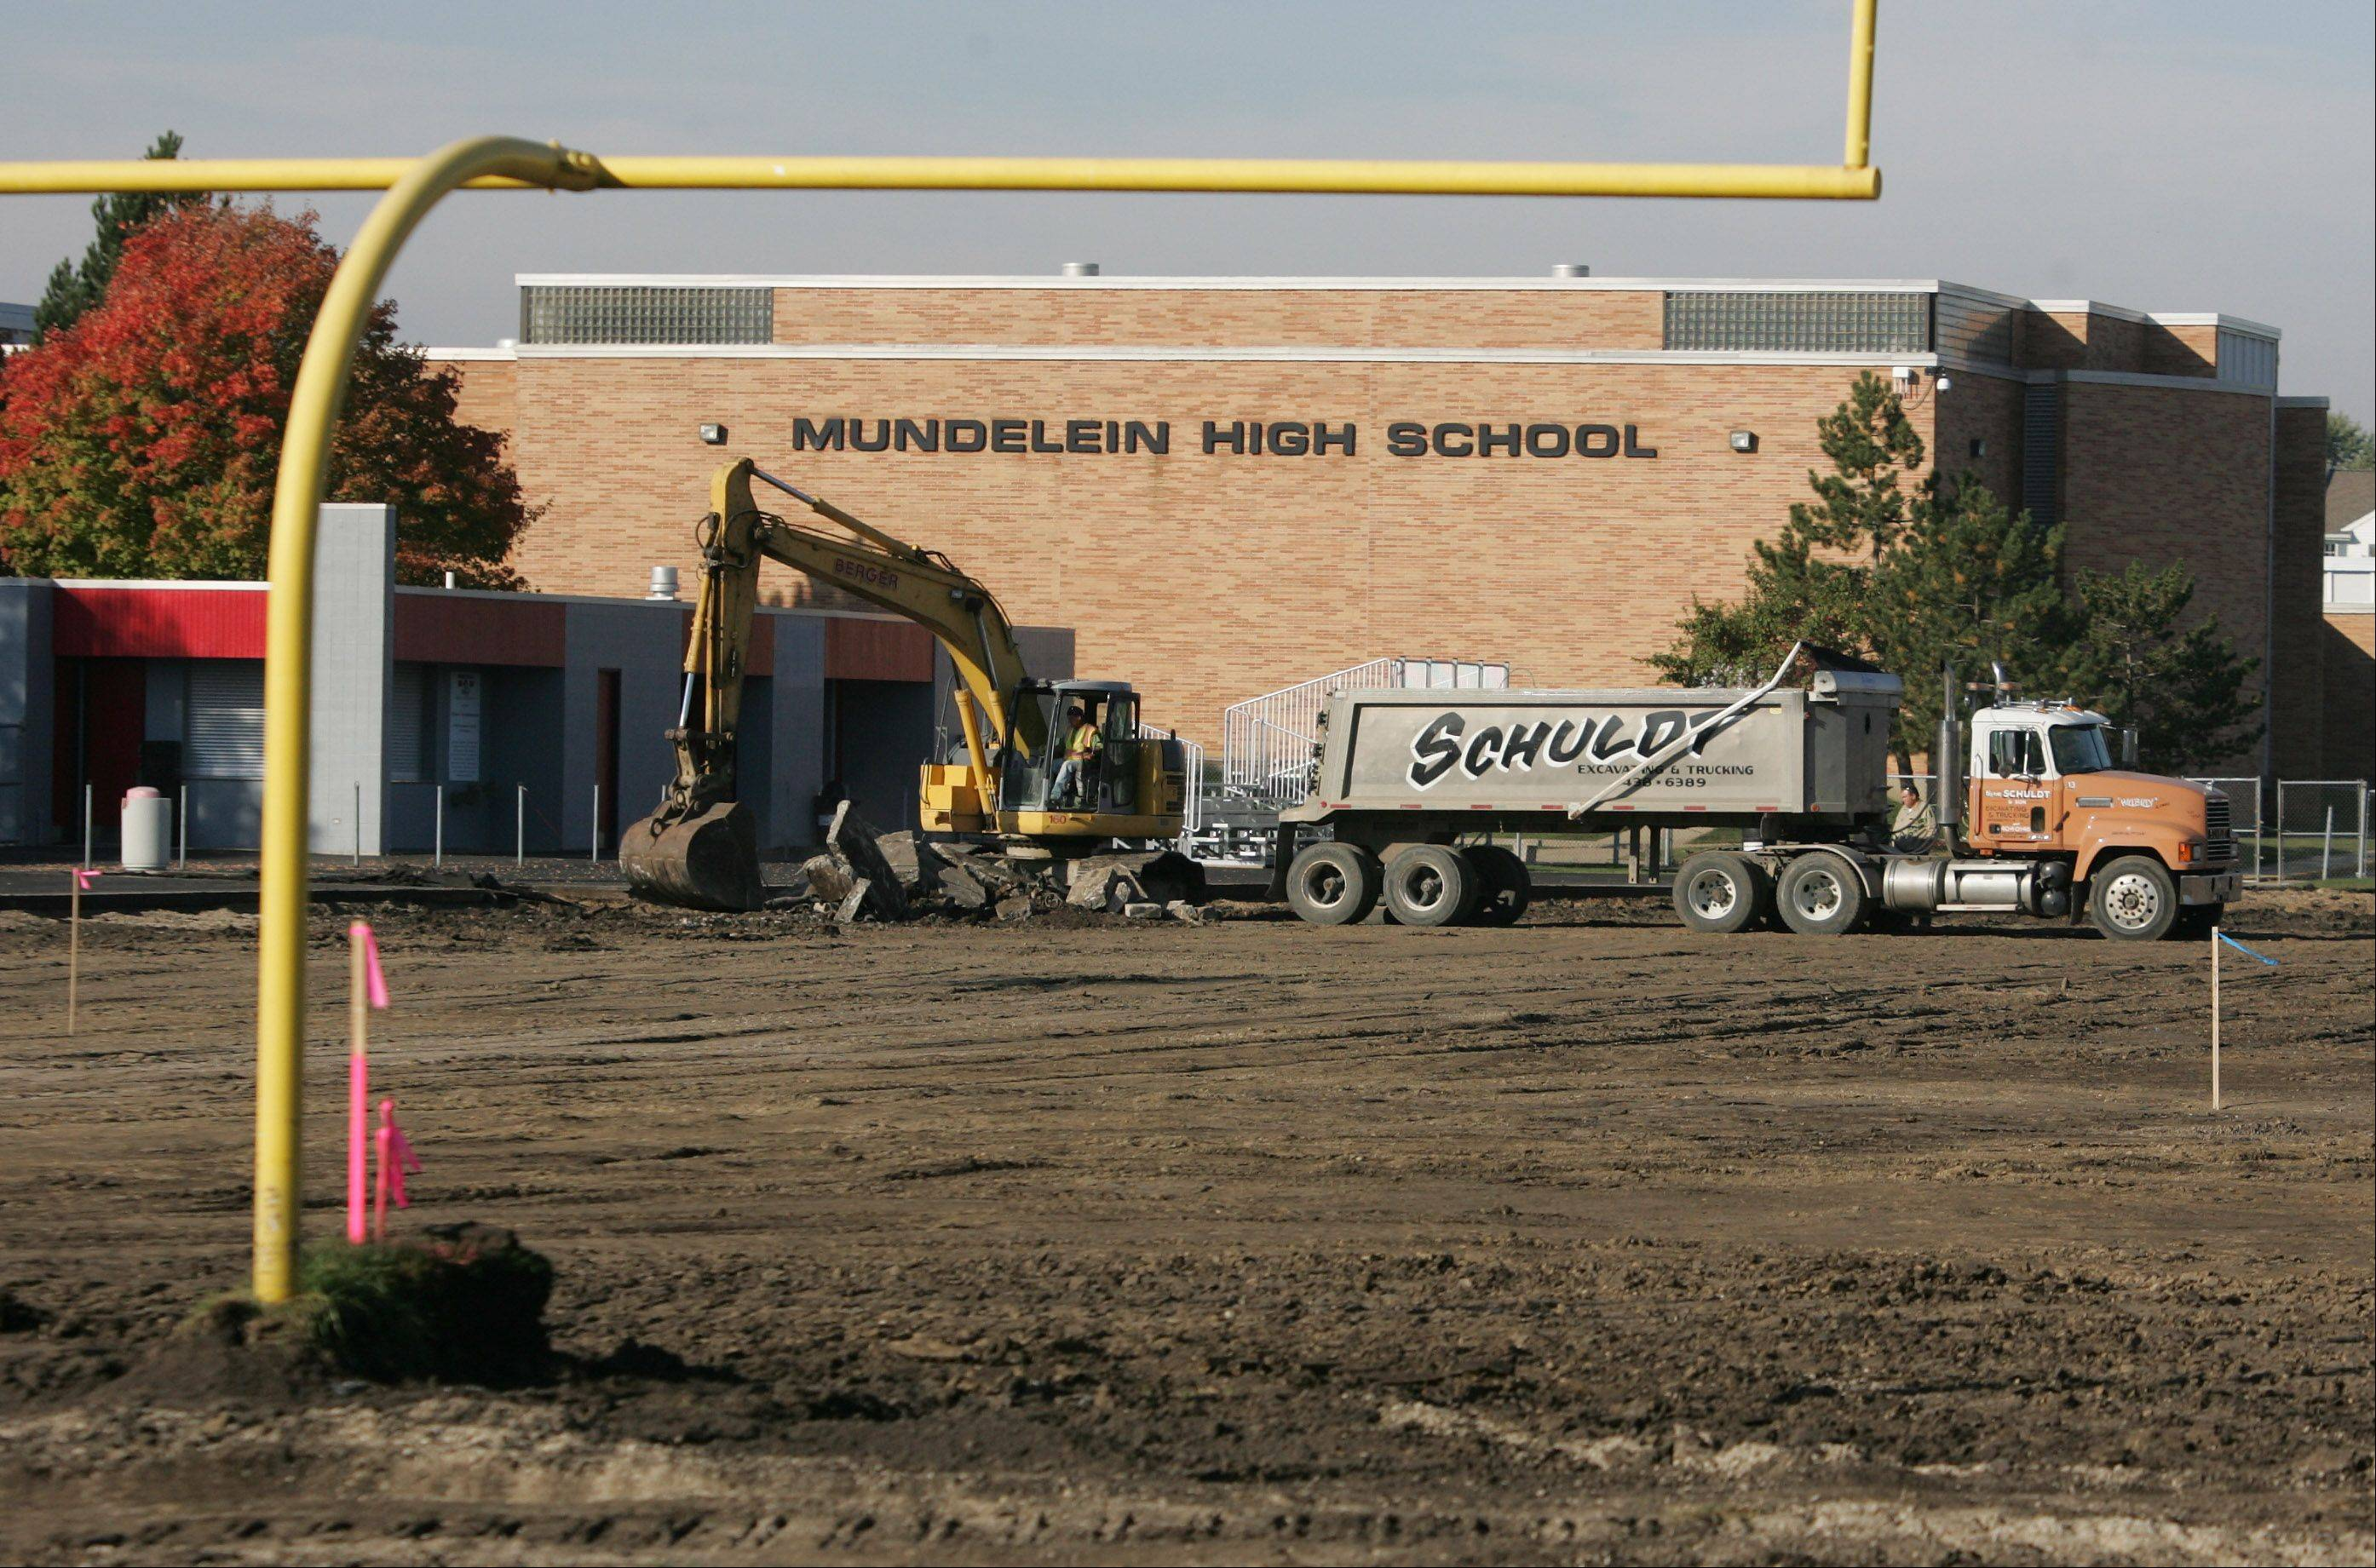 Mundelein High School's grass football field has been torn up to make way for an artificial playing surface that will be ready for play in 2012.